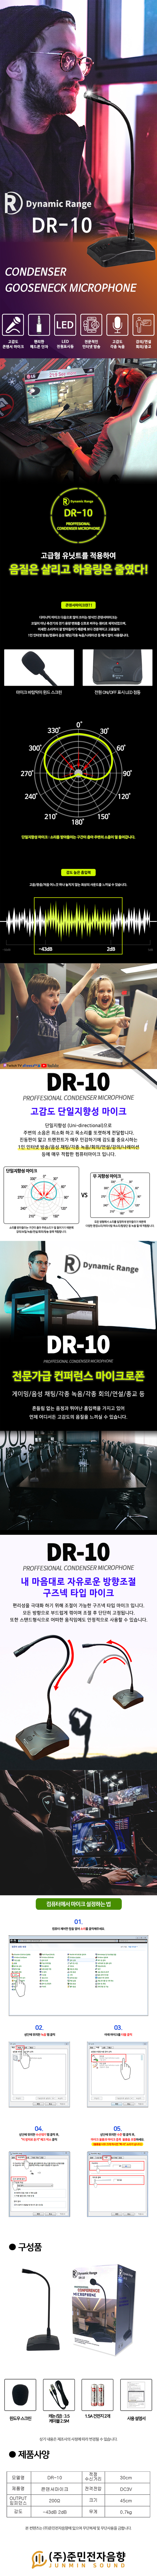 DR-10-PAGE-NEW.jpg